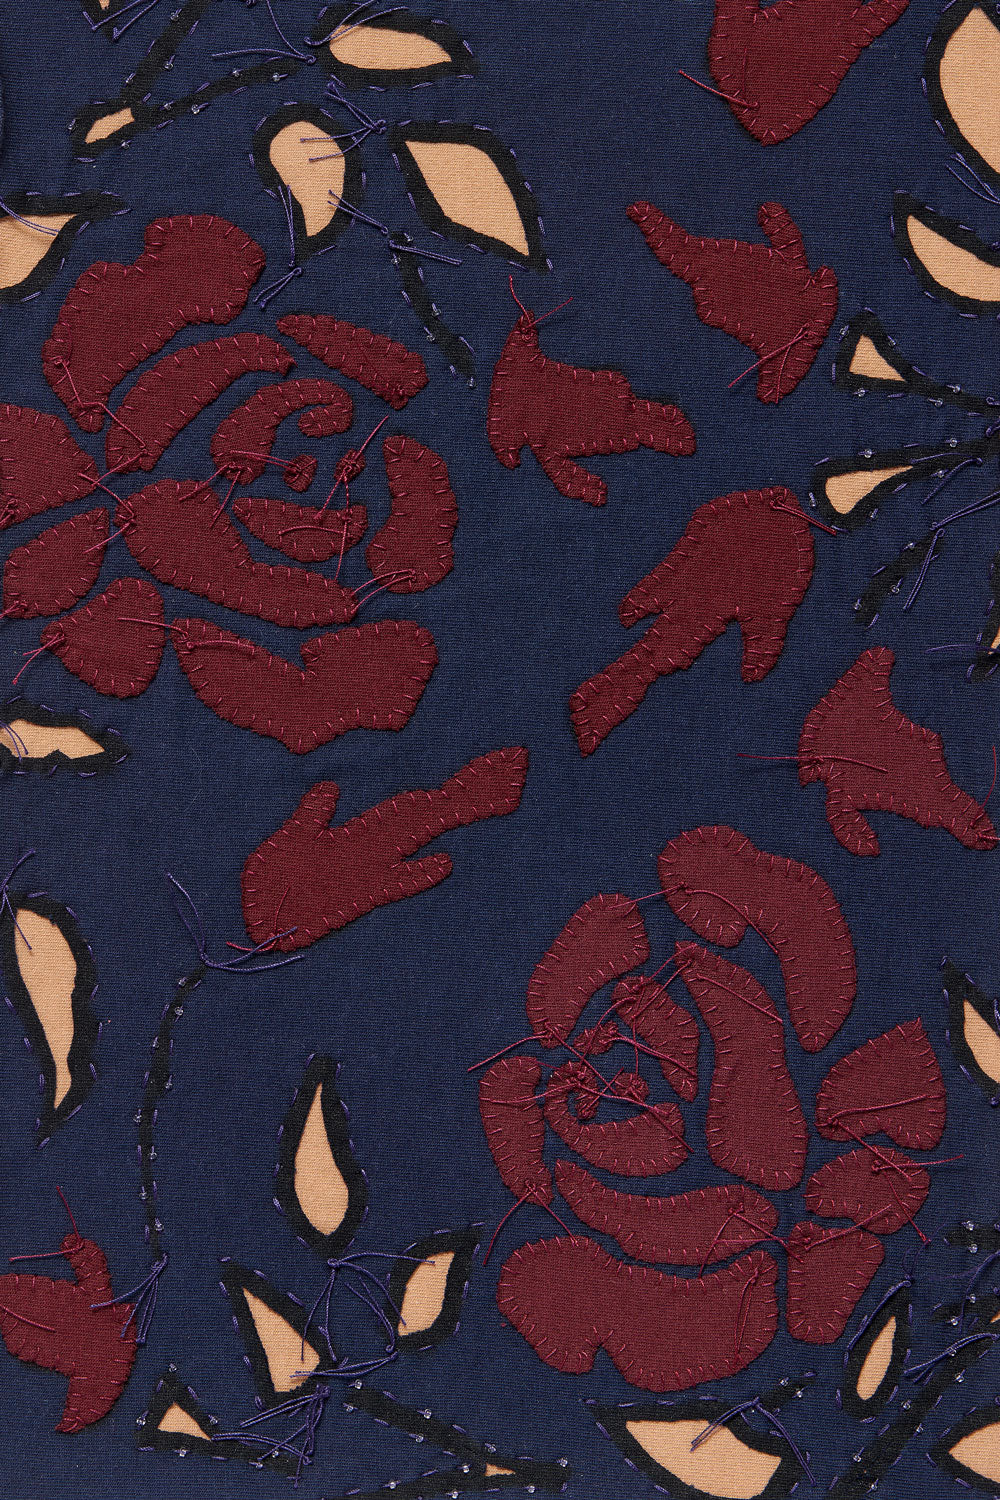 Alabama Chanin Rose Fabric Swatch in Navy and Camel Reverse Applique with Plum Rose Applique